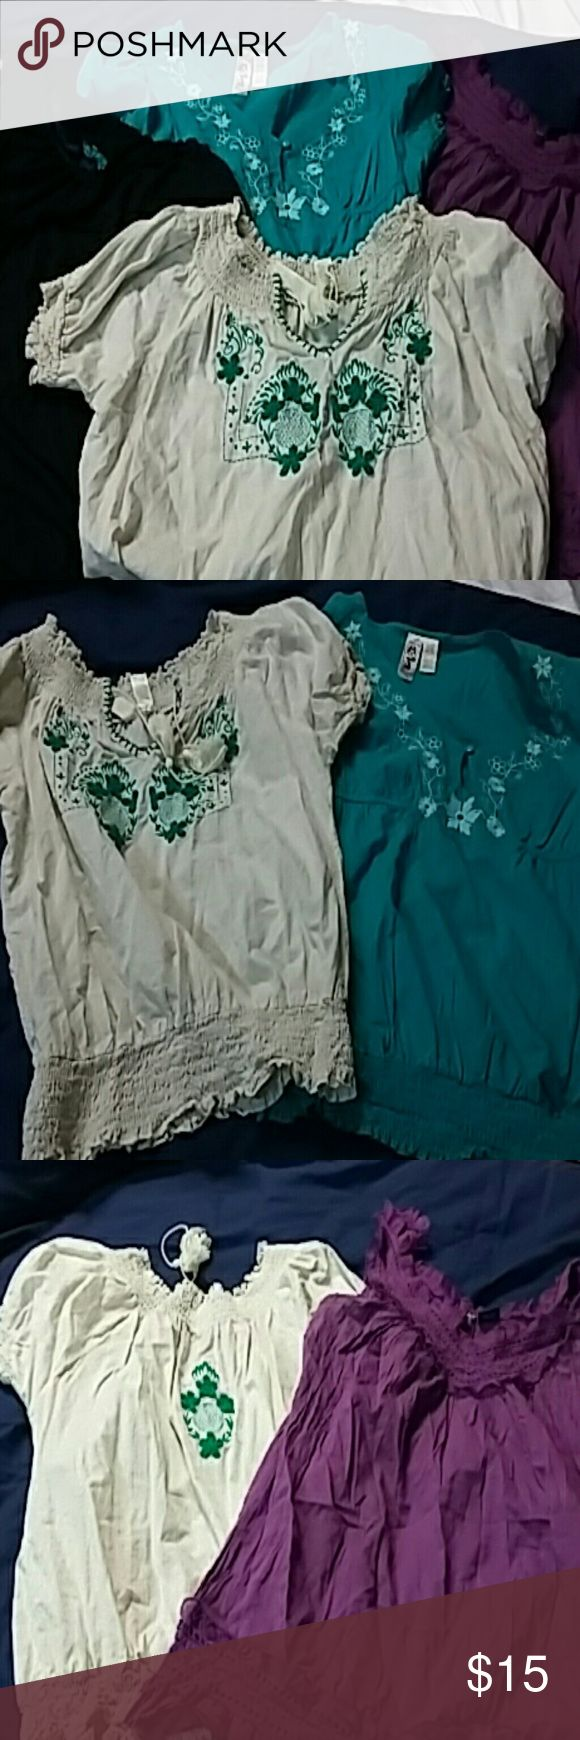 4 Embroderied elastic bottom smock tops Purple ruffled spaghetti strap and Black razor back cream smock top and green smock top all 4 size large Other